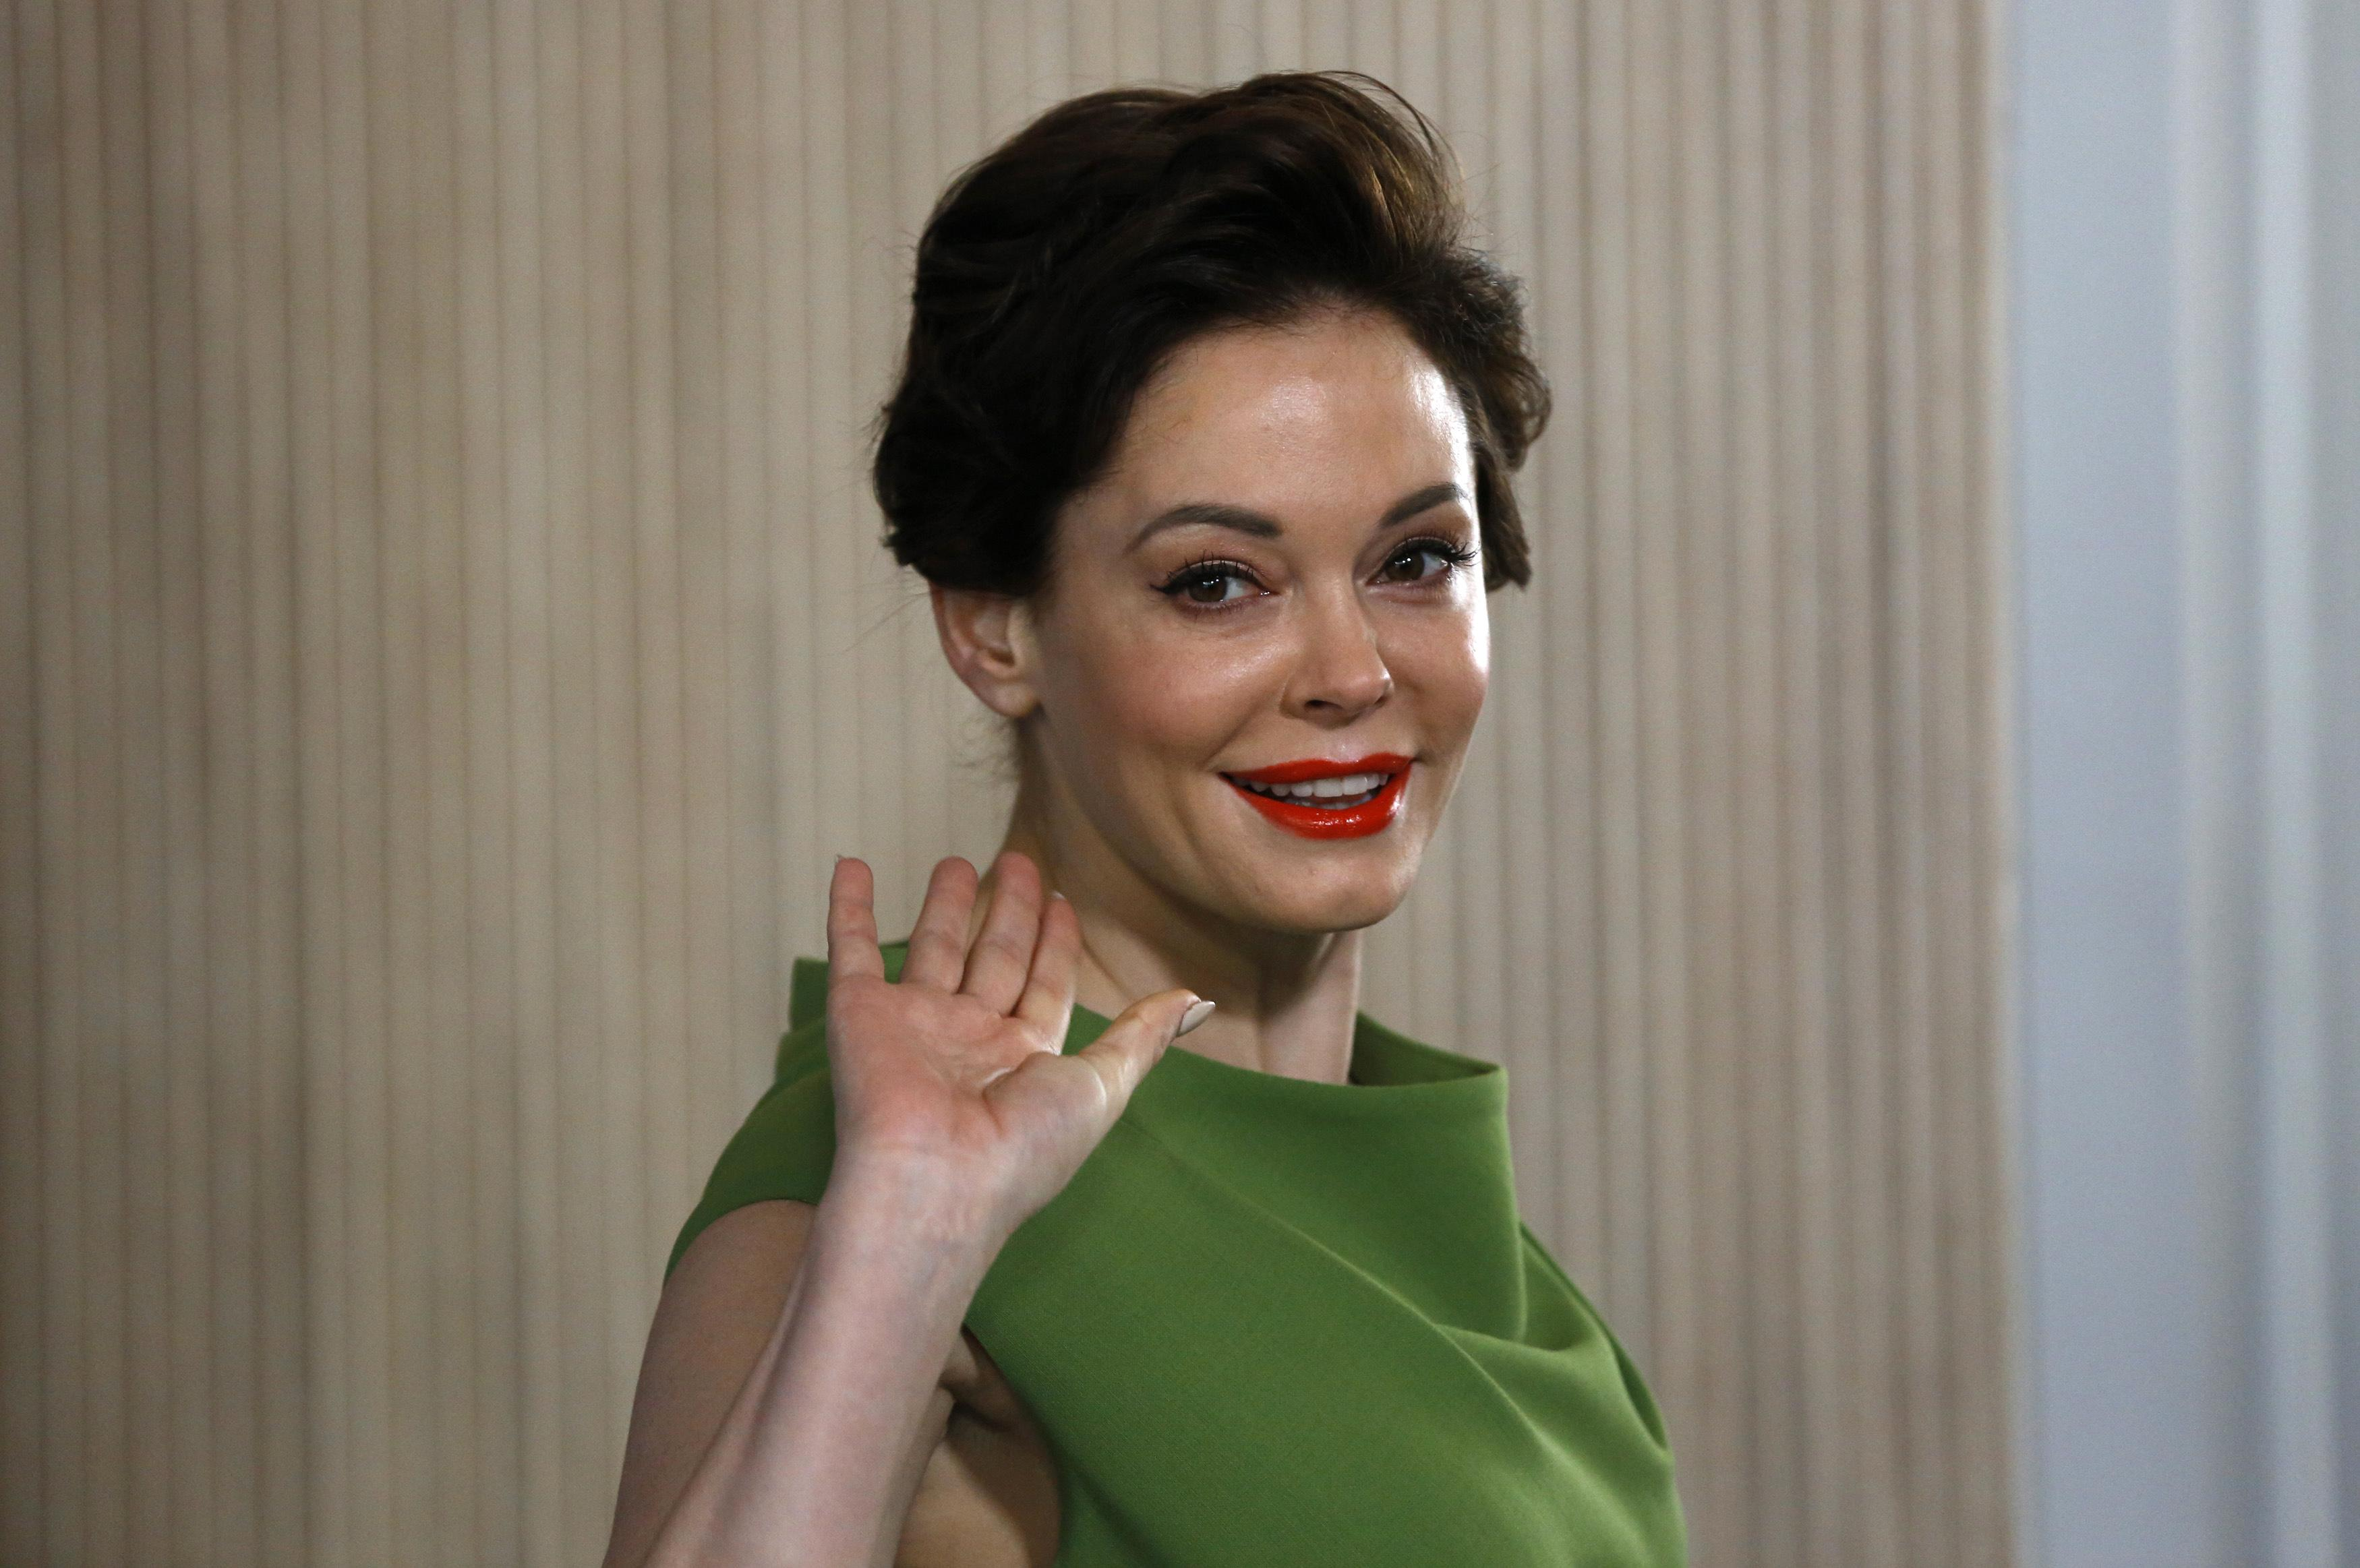 Rose McGowan as Mrs. Robinson?